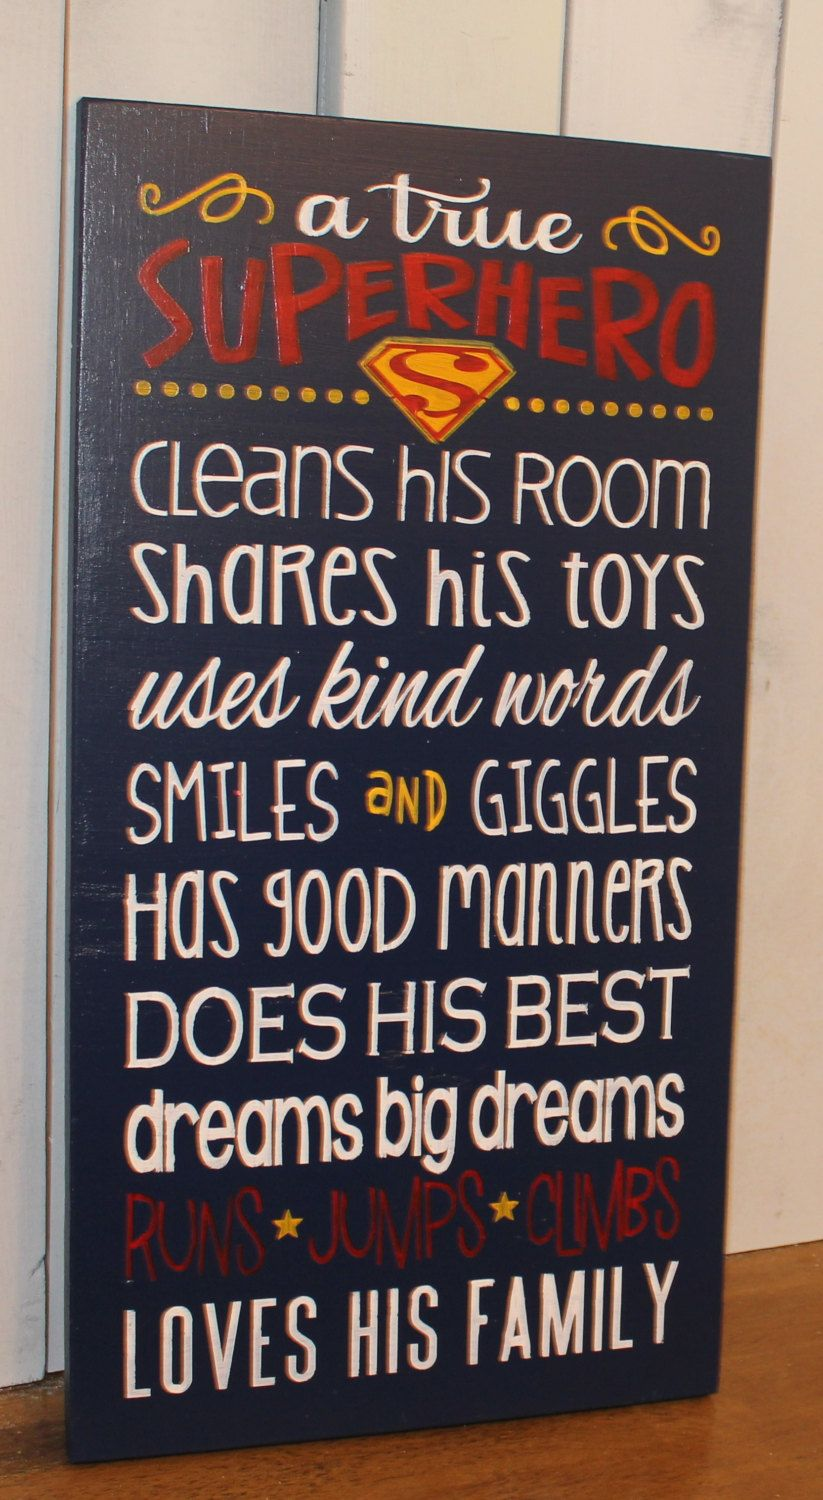 Idee Deco Chambre Garcon Super Heros a true superhero/subway style/boythegingerbreadshoppe on